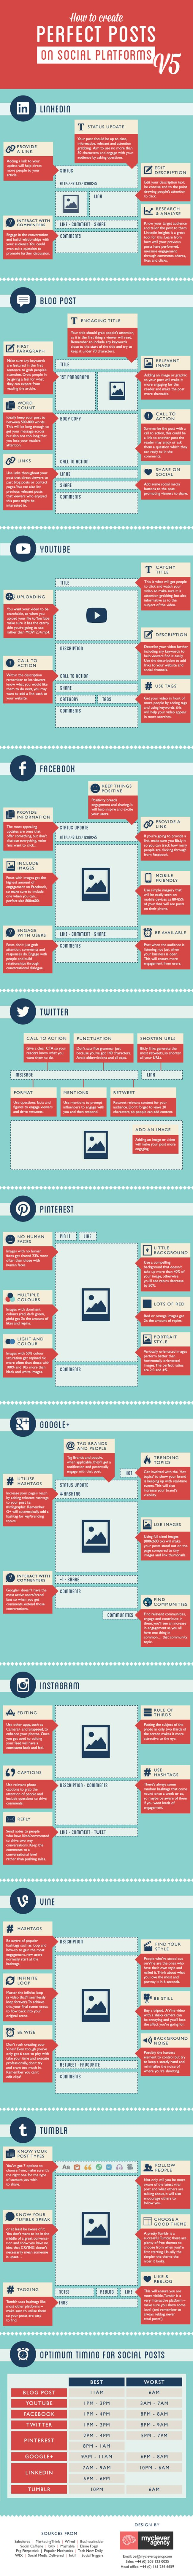 perfect post infographic